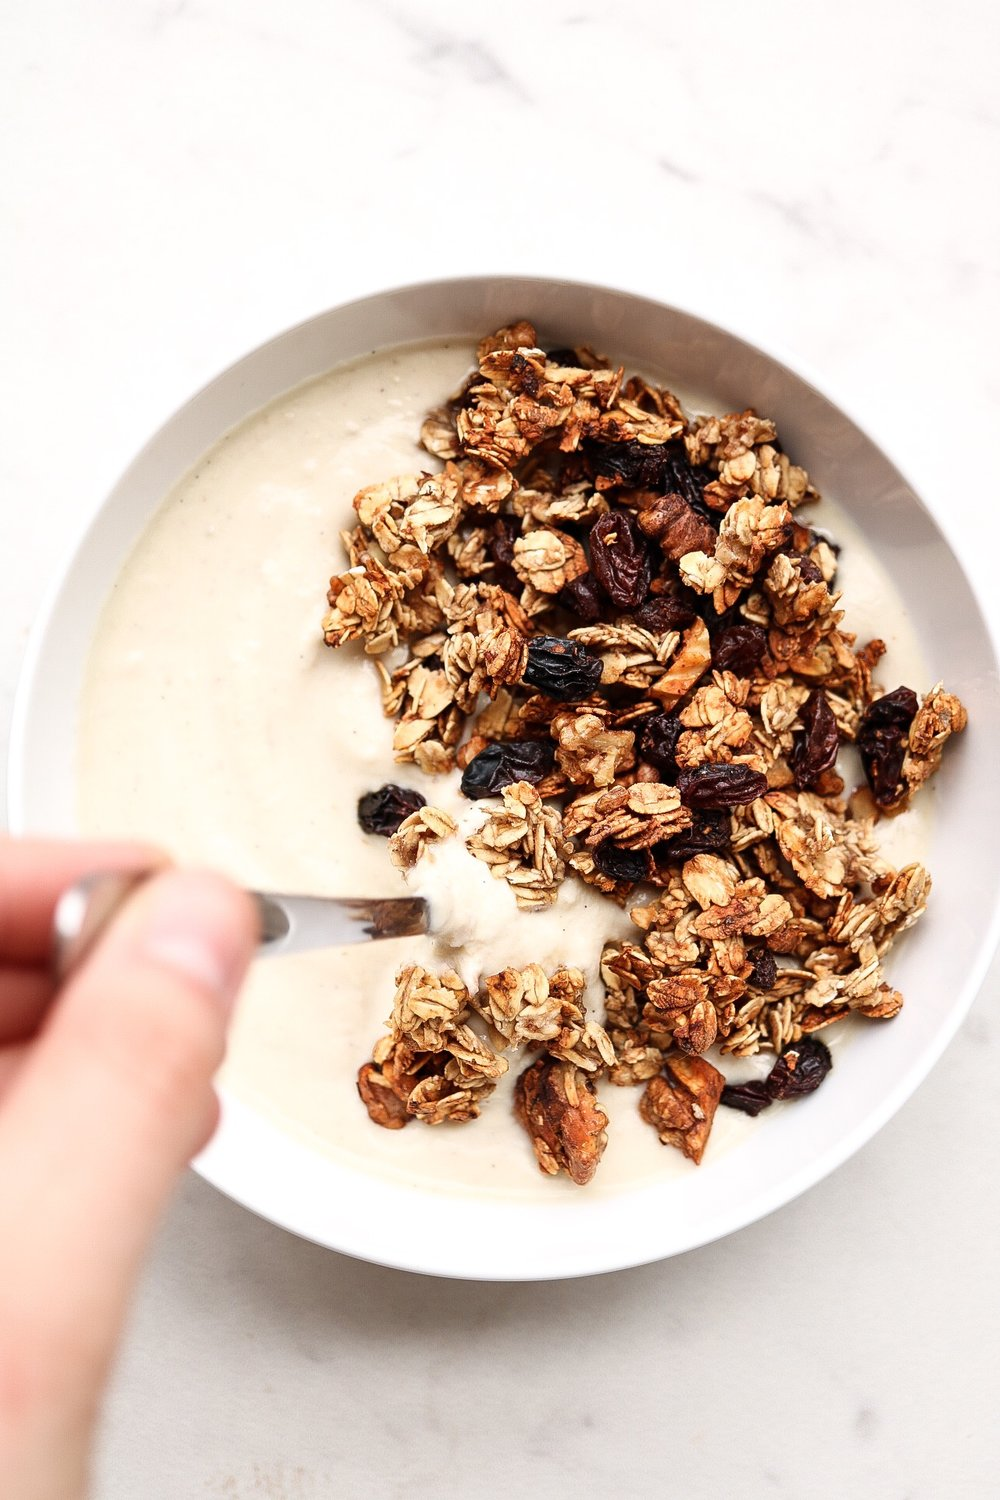 Add your granola to your favorite yogurt or smoothie!